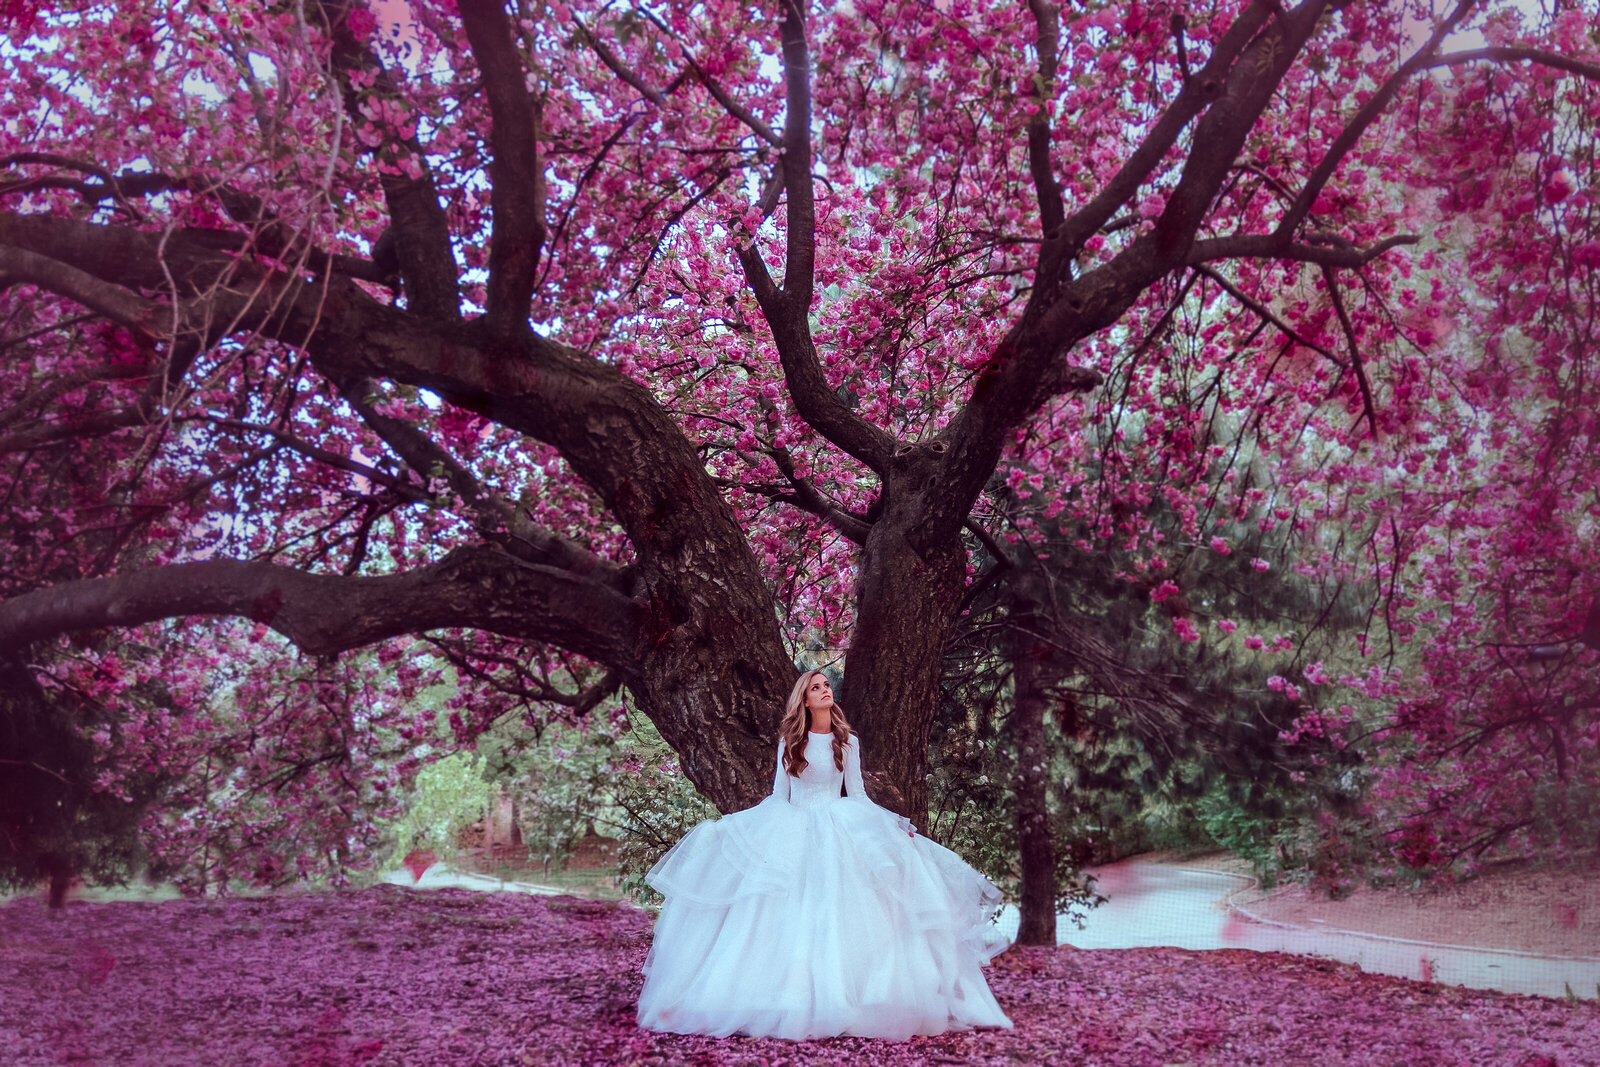 spring-prospect-park-bridal-wedding-portraits-by-suess-moments-wedding-photographer-nyc-brooklyn (1 of 1)-showit